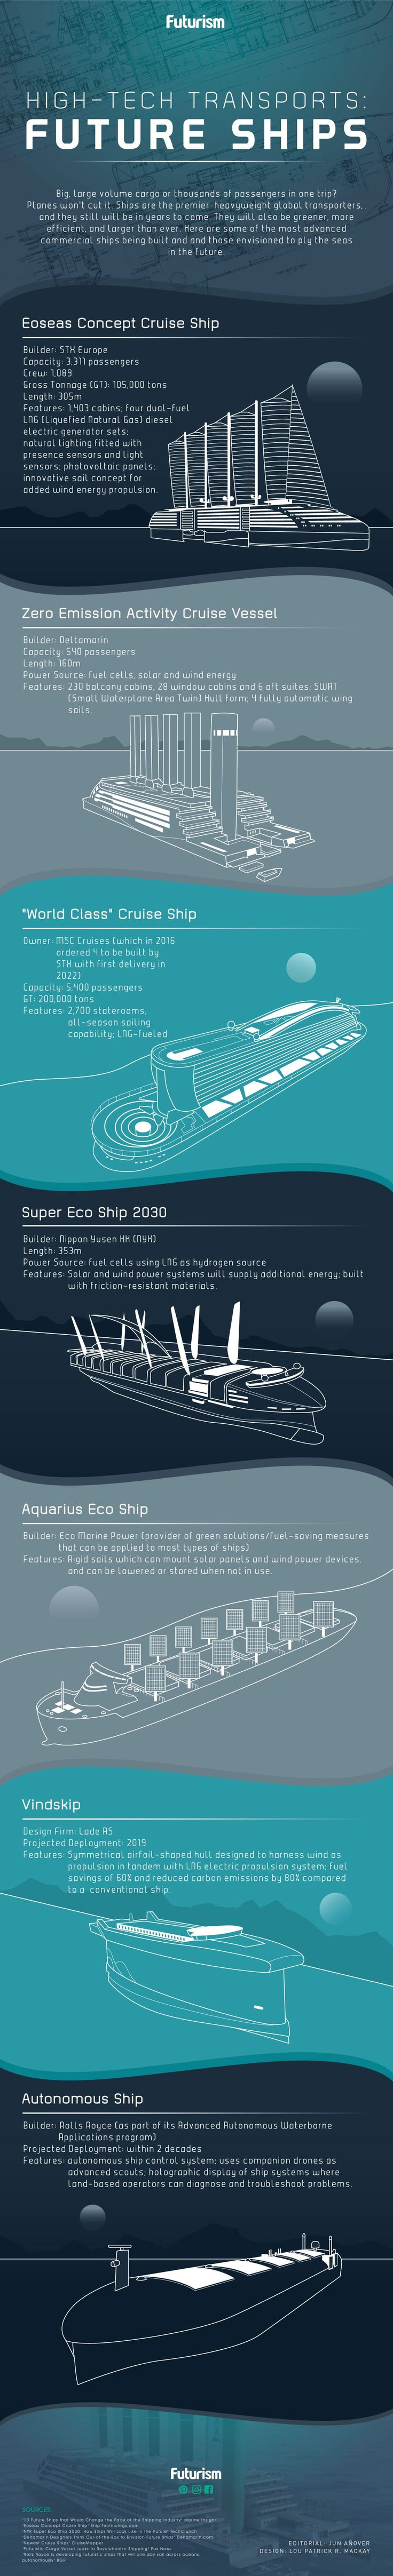 The Future of Shipping is Green and Autonomous -  Space travel may be exciting and self-driving cars get a lot of media attention for how theyll change our lives.  However there remains a good argument that the worlds oceans  and the ships that roam them  often get overlooked when it comes to advances in transportation technology.  How will shipping change in the coming years and what trends can we look to for guidance on the future of shipping?  The Future of Shipping  Todays infographic…